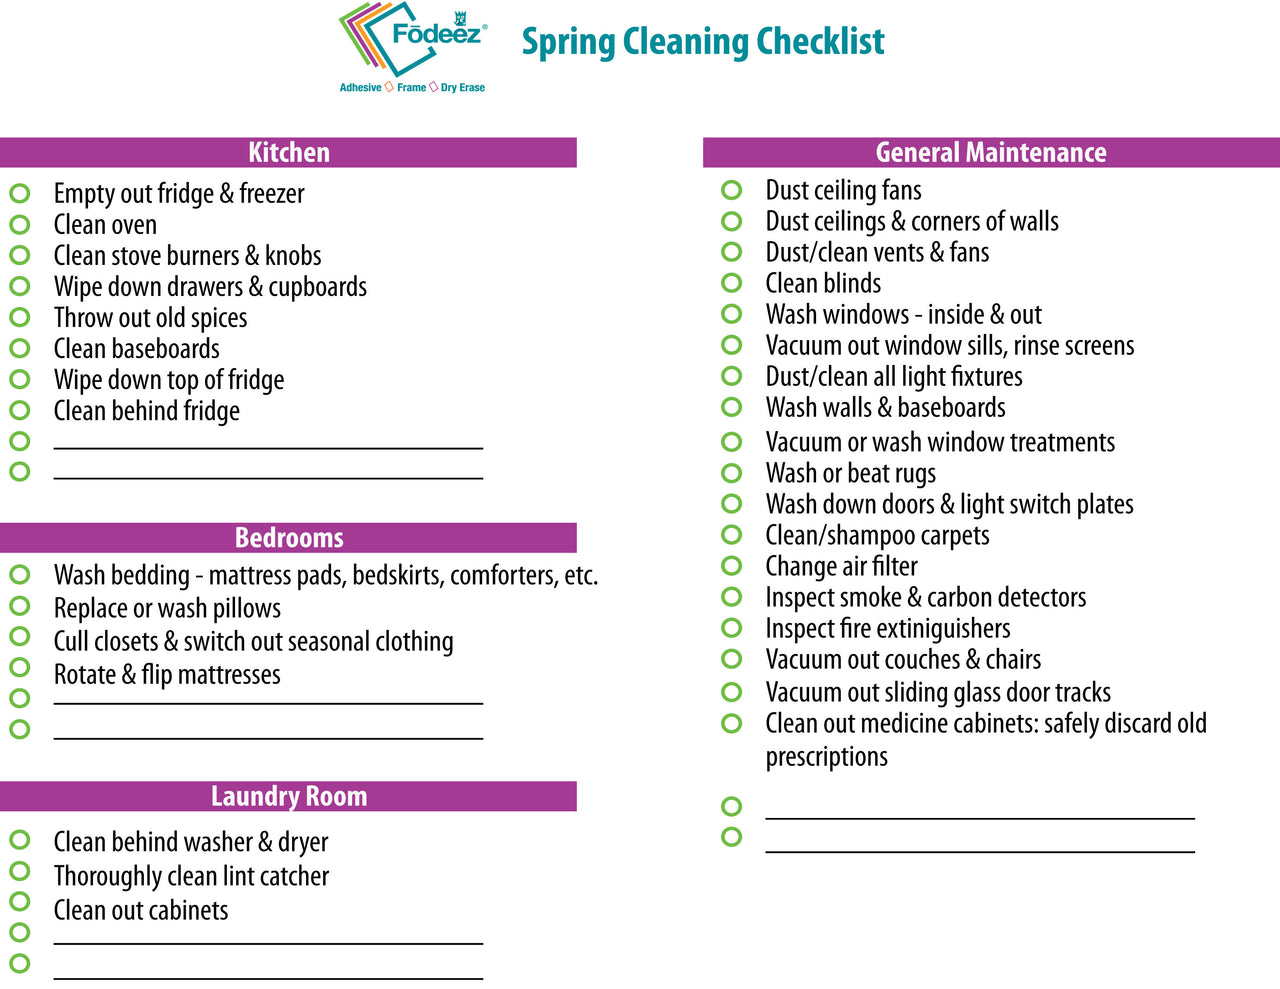 Free Download - Spring Cleaning Checklist